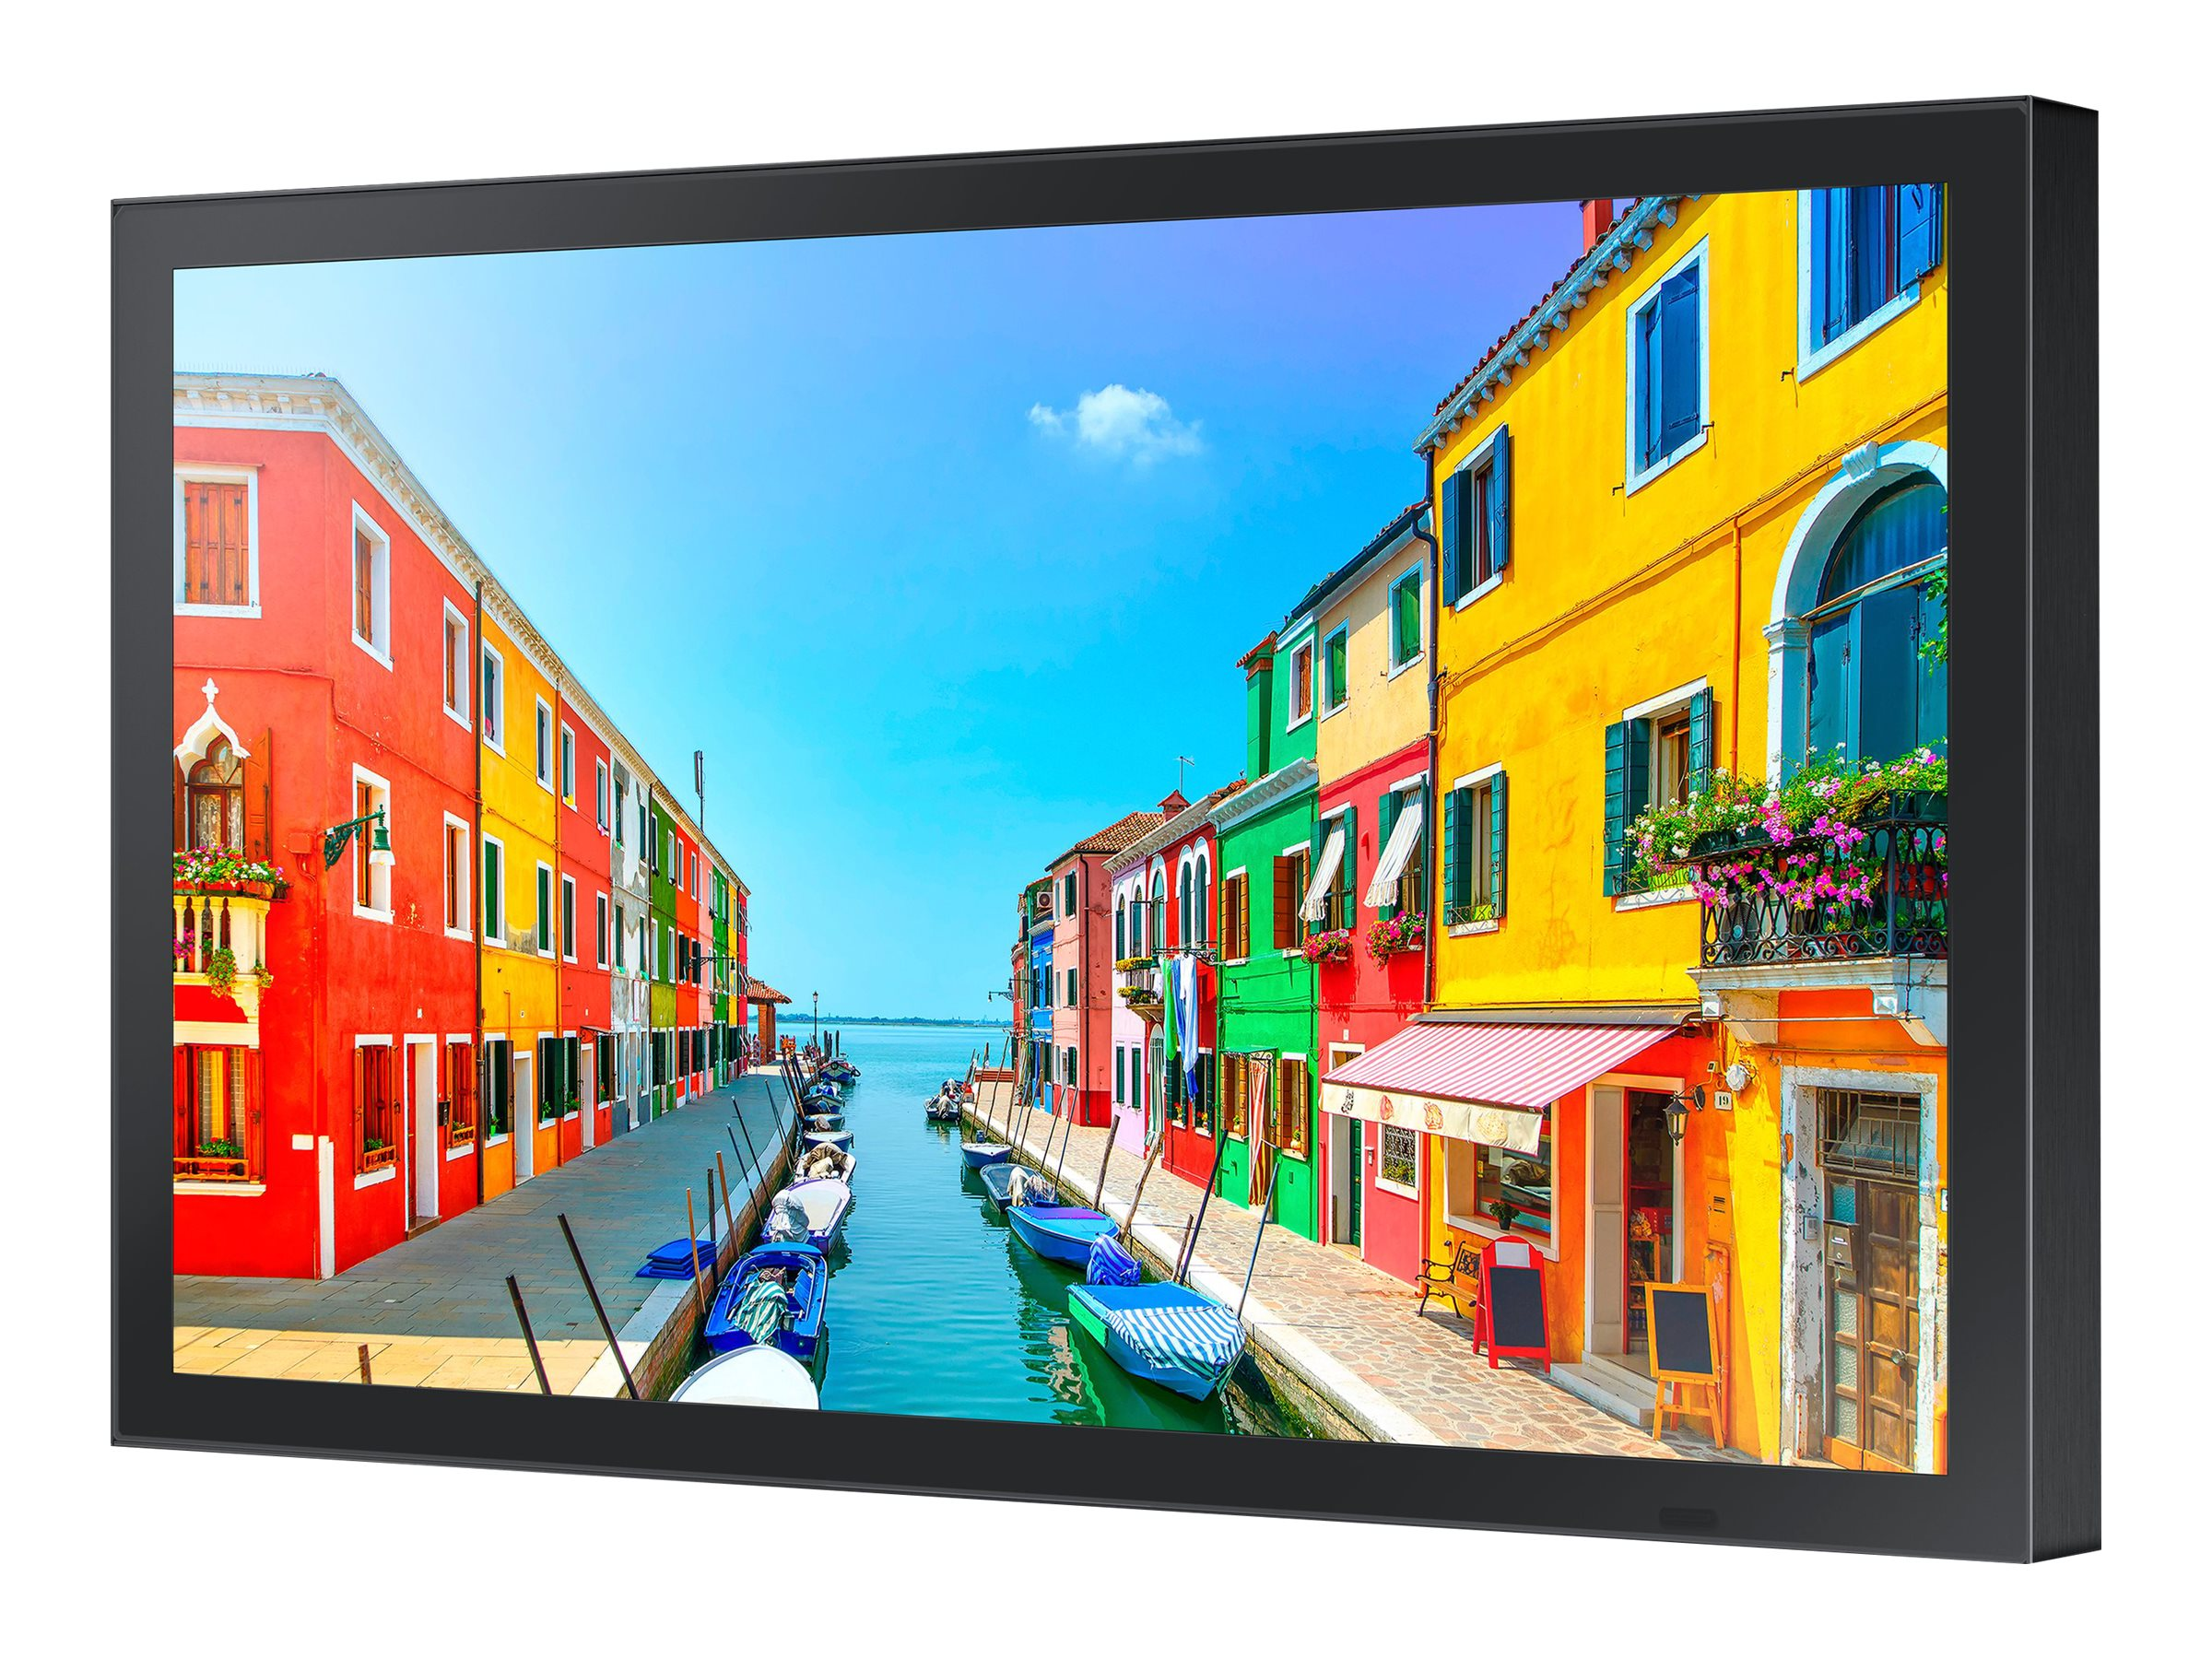 Samsung 23.8 OH-E Full HD LED-LCD Commercial Display, Black, OH24E